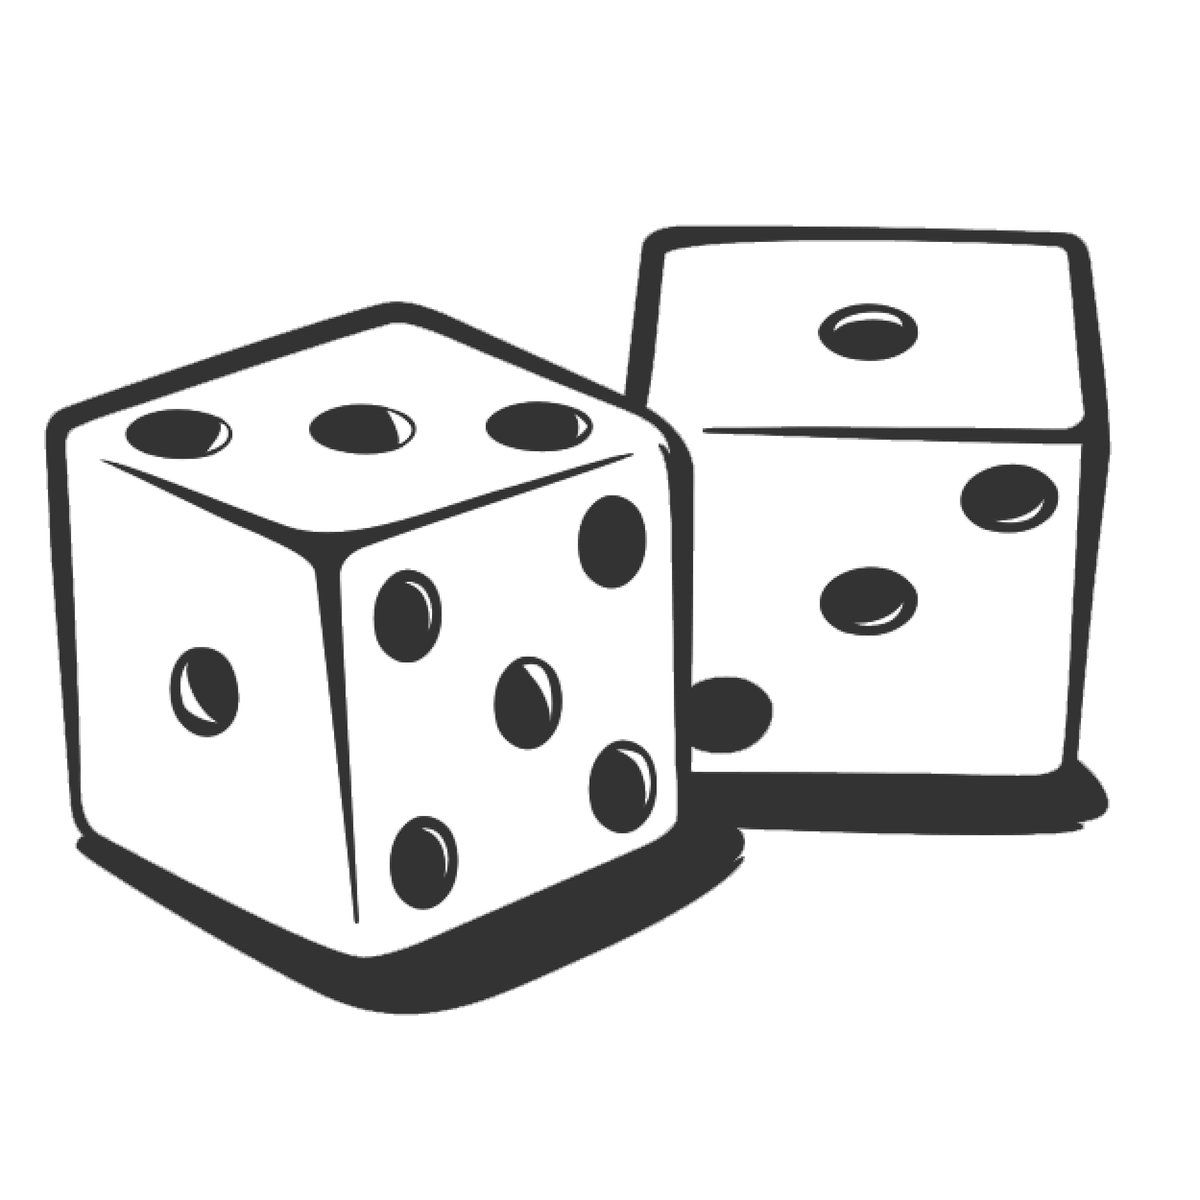 Gaming Clipart Roll Dice Frames Illustrations Hd